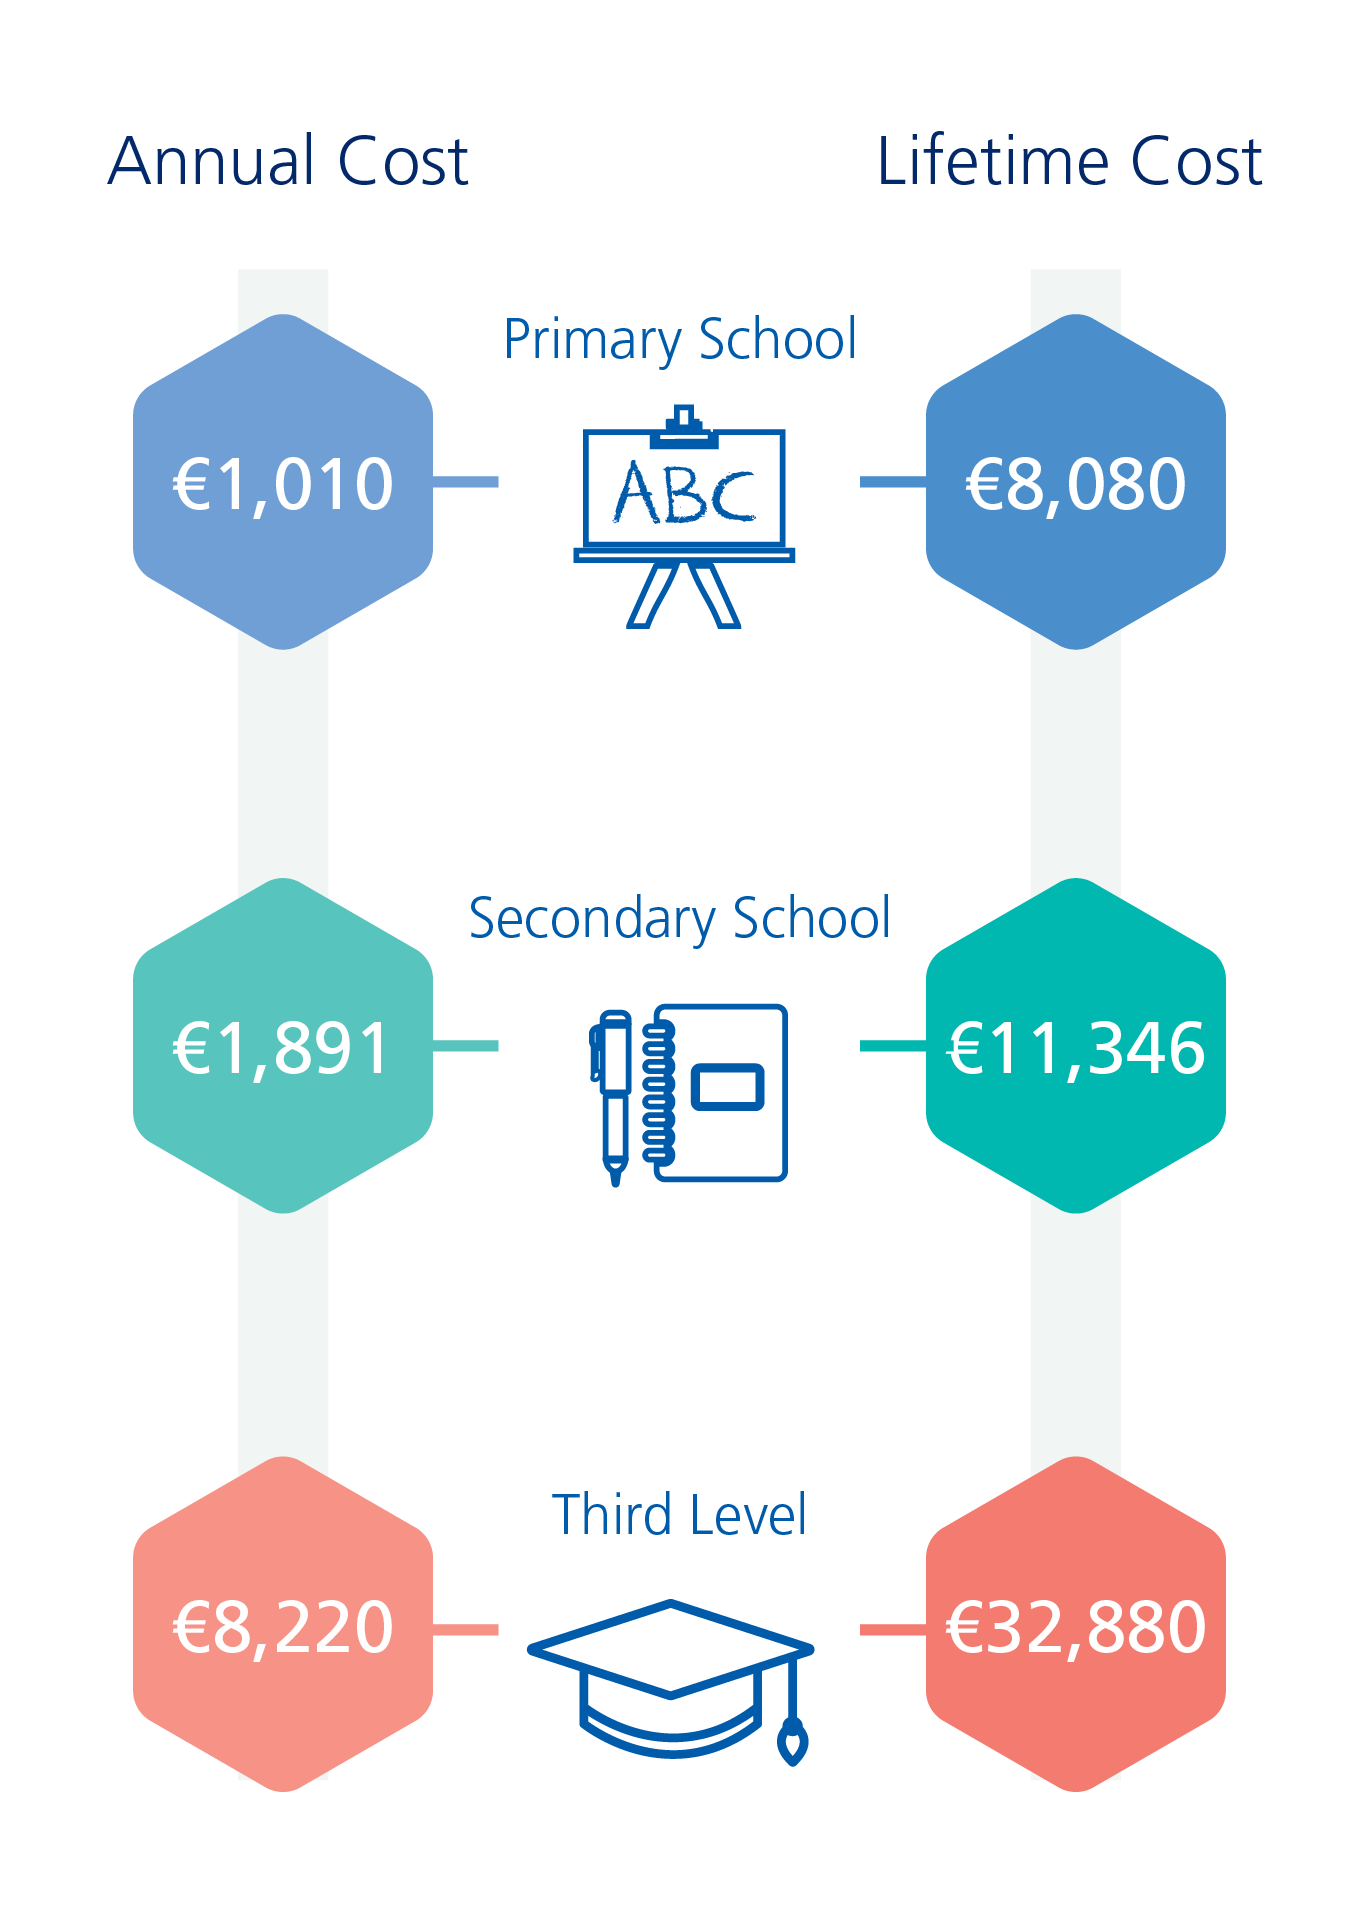 Graphic showing lifetime cost of education in Ireland